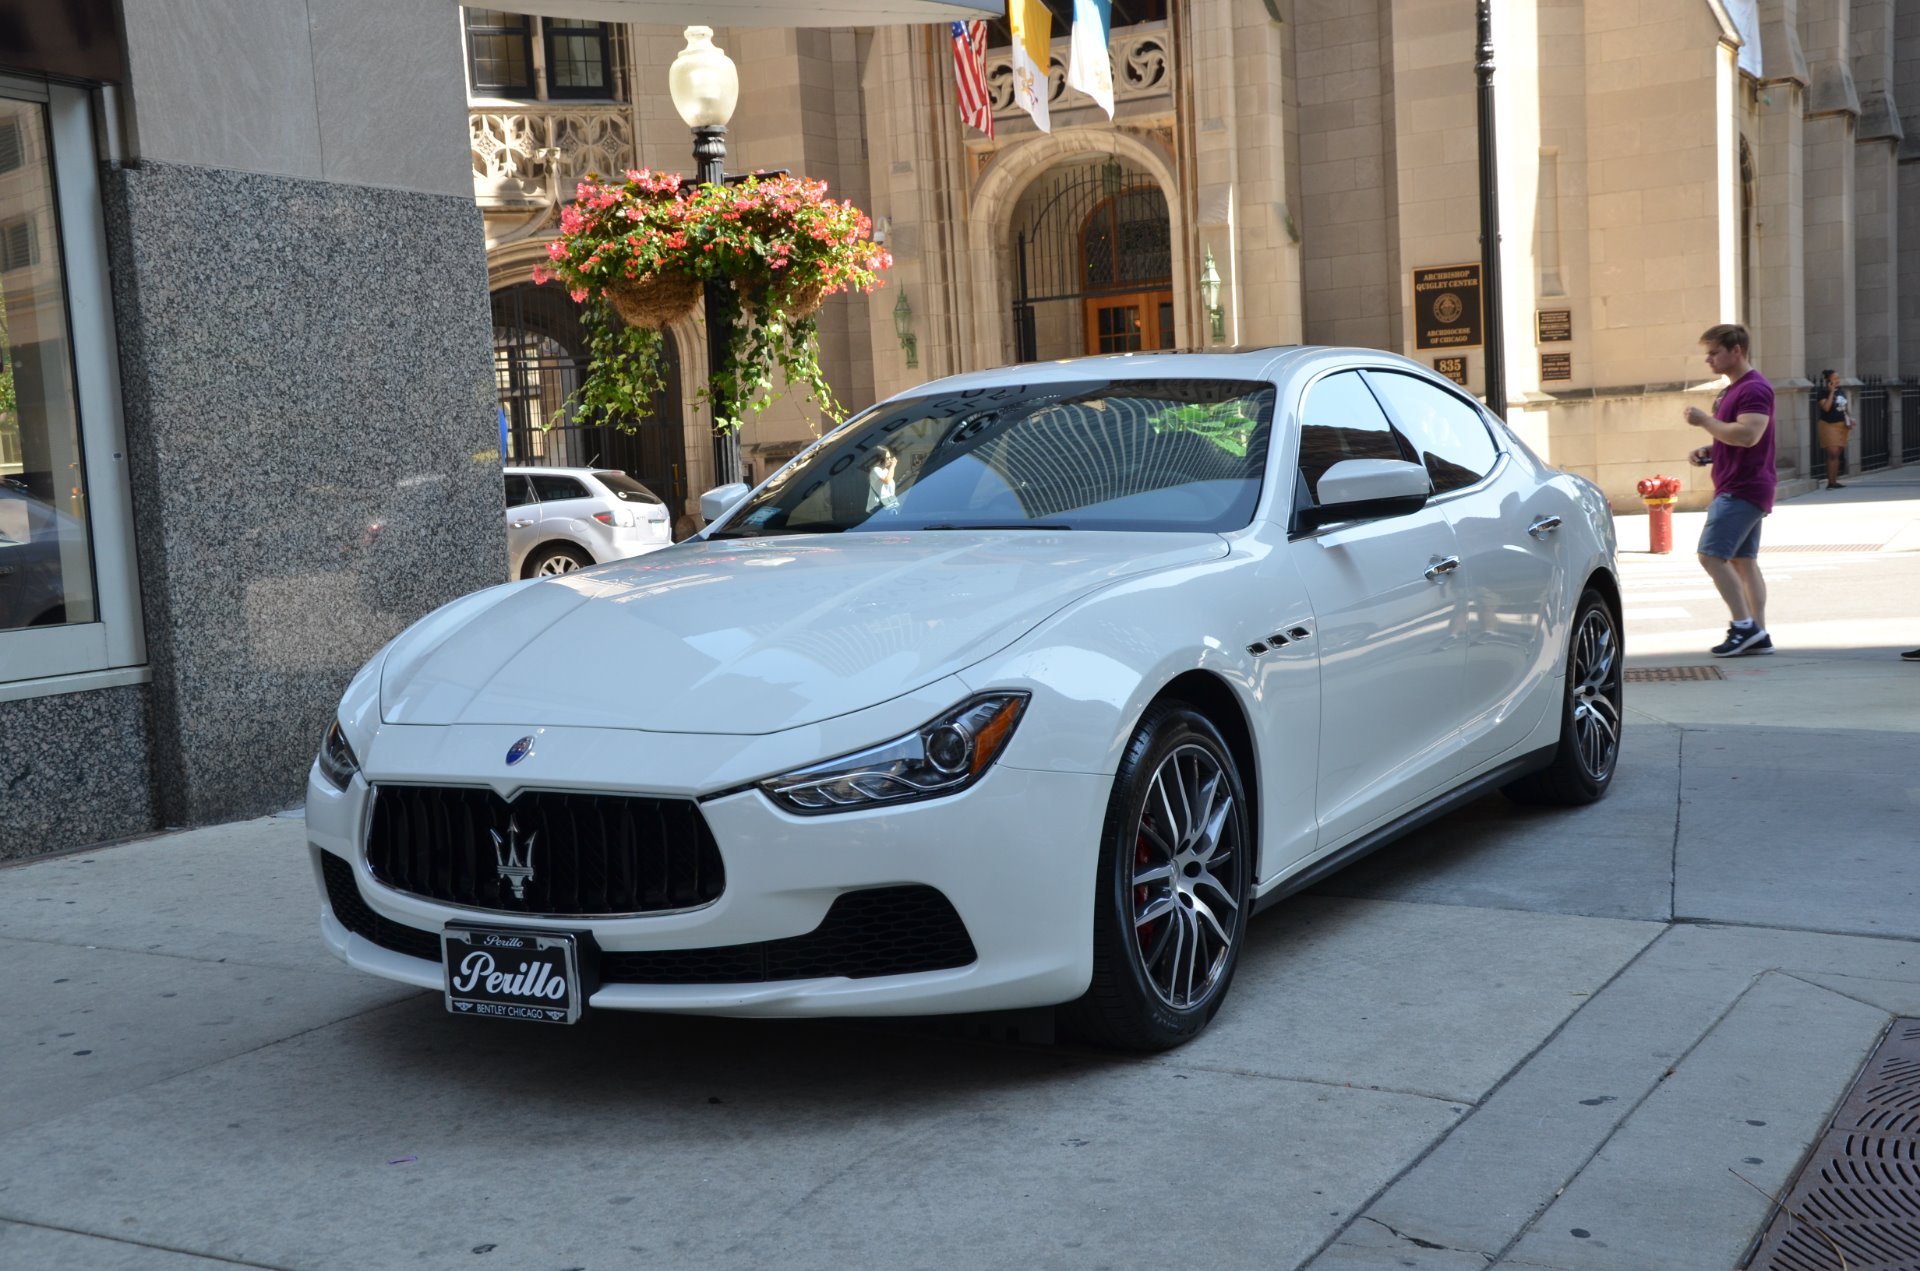 2017 maserati ghibli sq4 s q4 stock gc tucker5 for sale near chicago il il maserati dealer. Black Bedroom Furniture Sets. Home Design Ideas